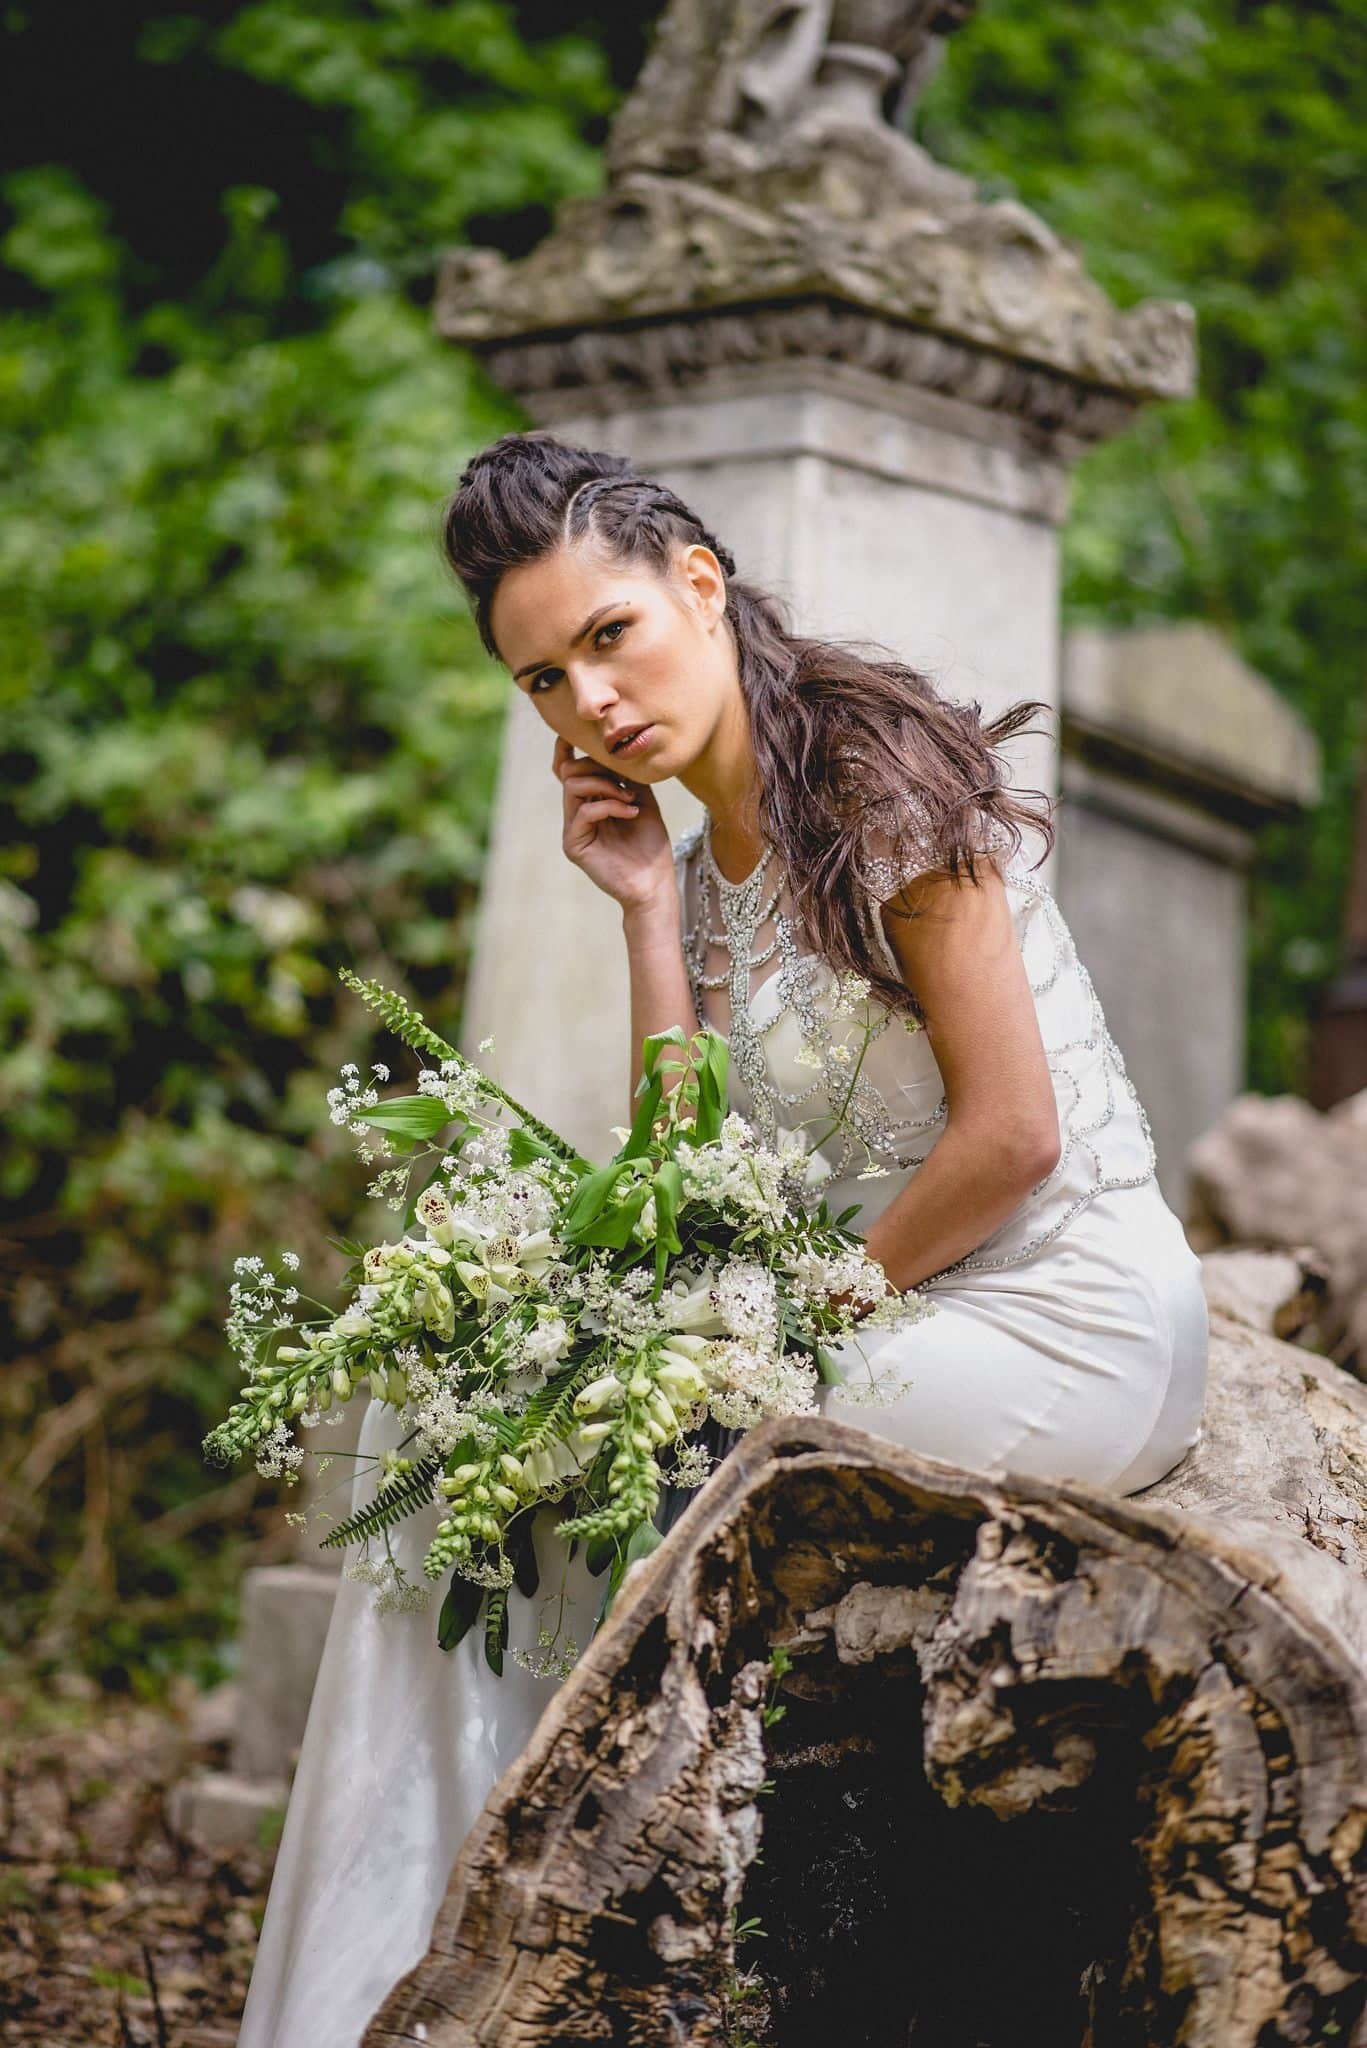 Bride sits on fallen tree, leaning forward and resting her chin on her hand